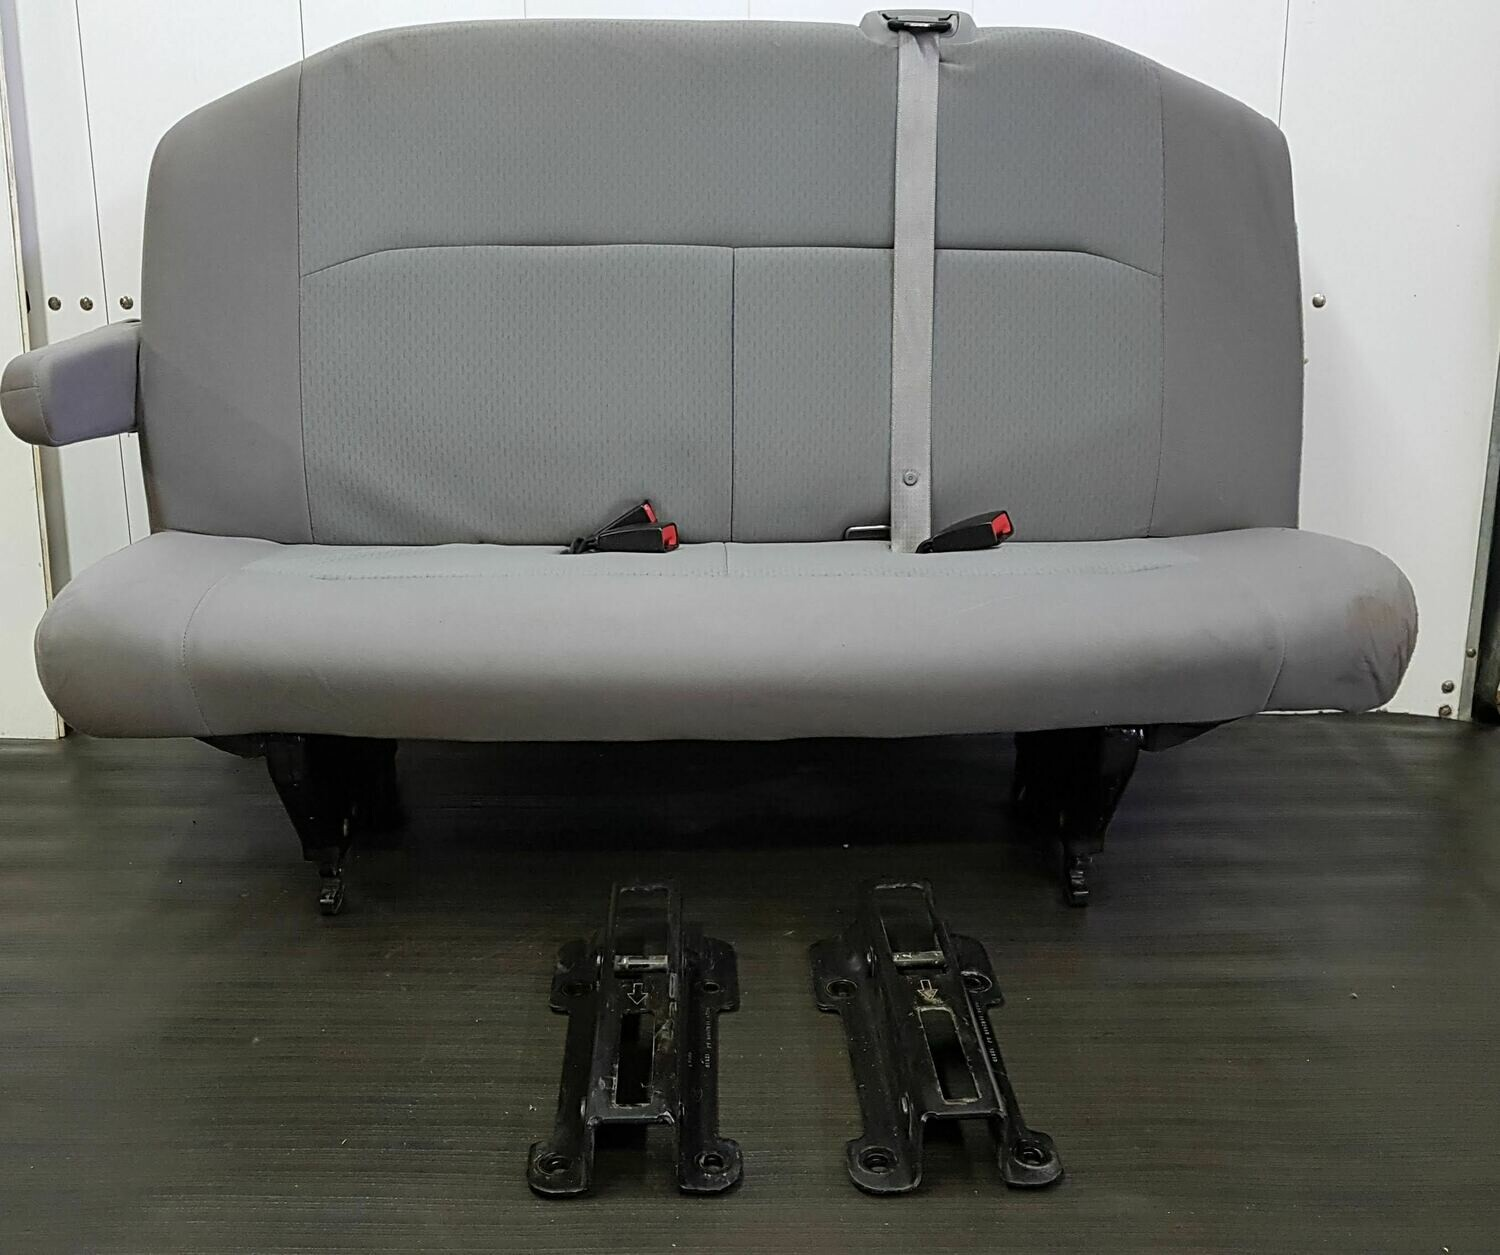 3 Passengers Bench Seat - Removable